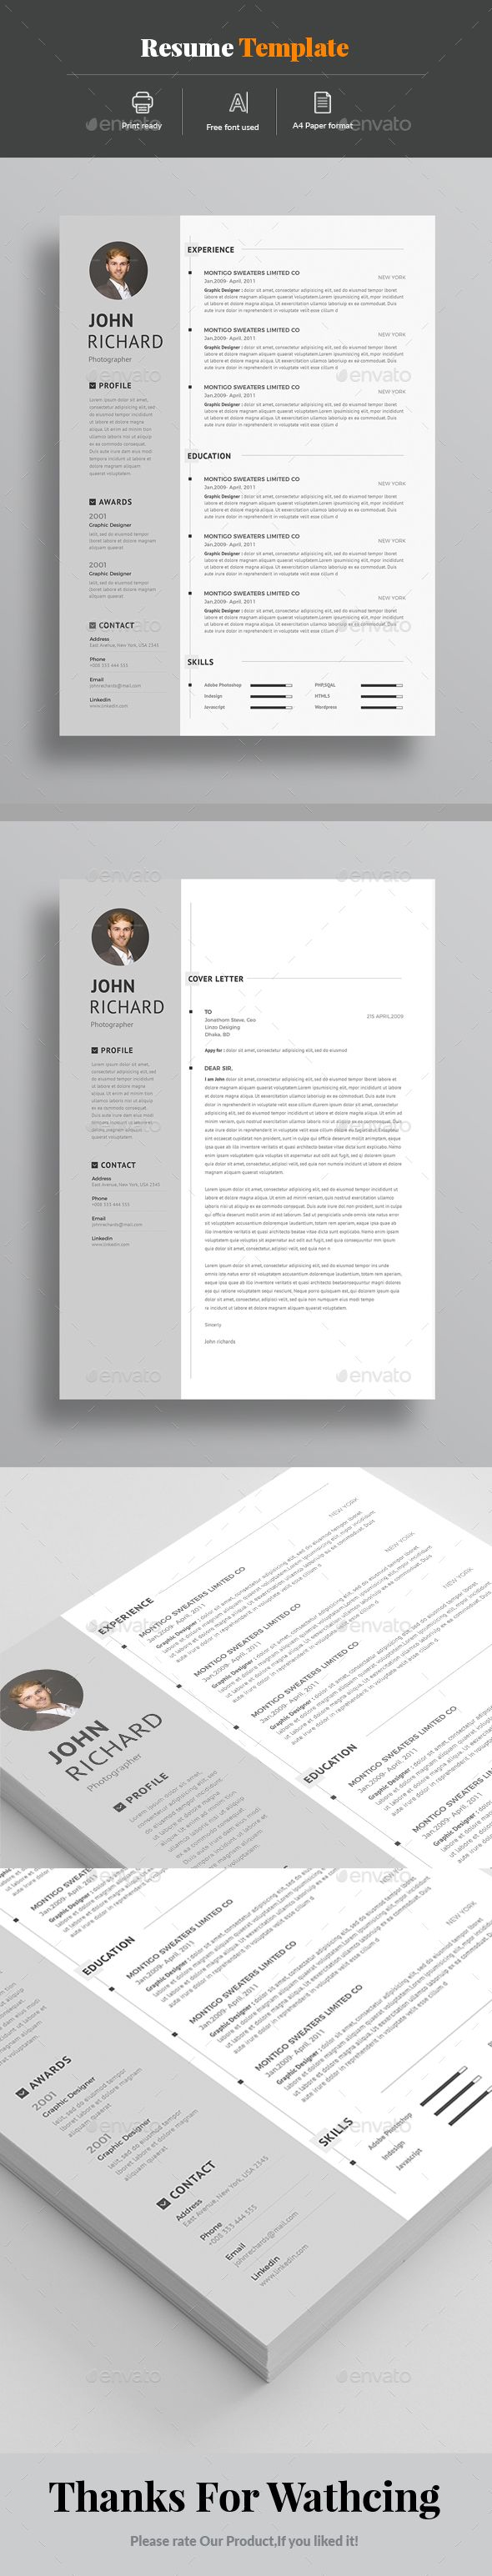 Resume & Cover Letter Template PSD